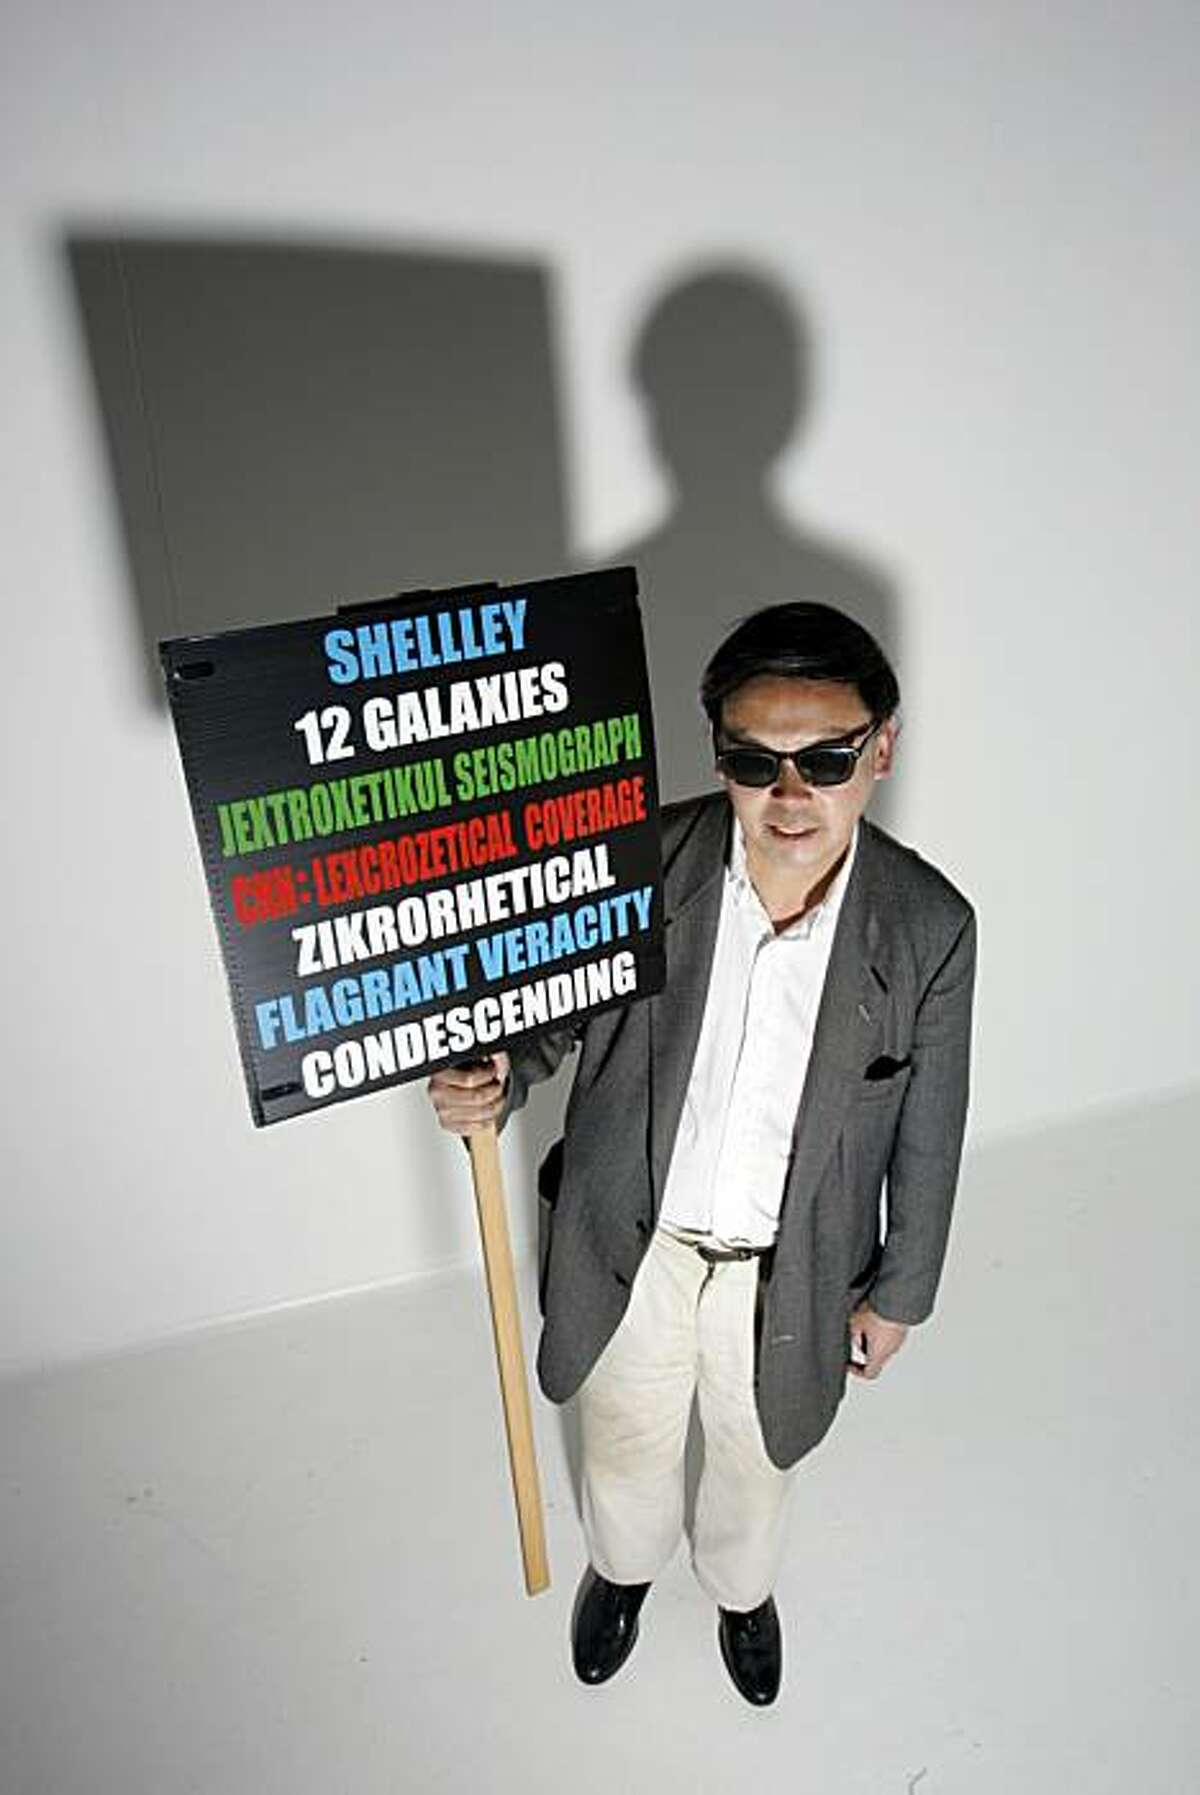 Professional protestor Frank Chu, of the legendary Zegnatronic Rocket Society. Frank, also known as the fellow who marches around the Bay Area with his multi-colored 12 Galaxies proclamation sign, was the inspiration for the name of a new live music club on Mission Street in SF called 12 Galaxies.